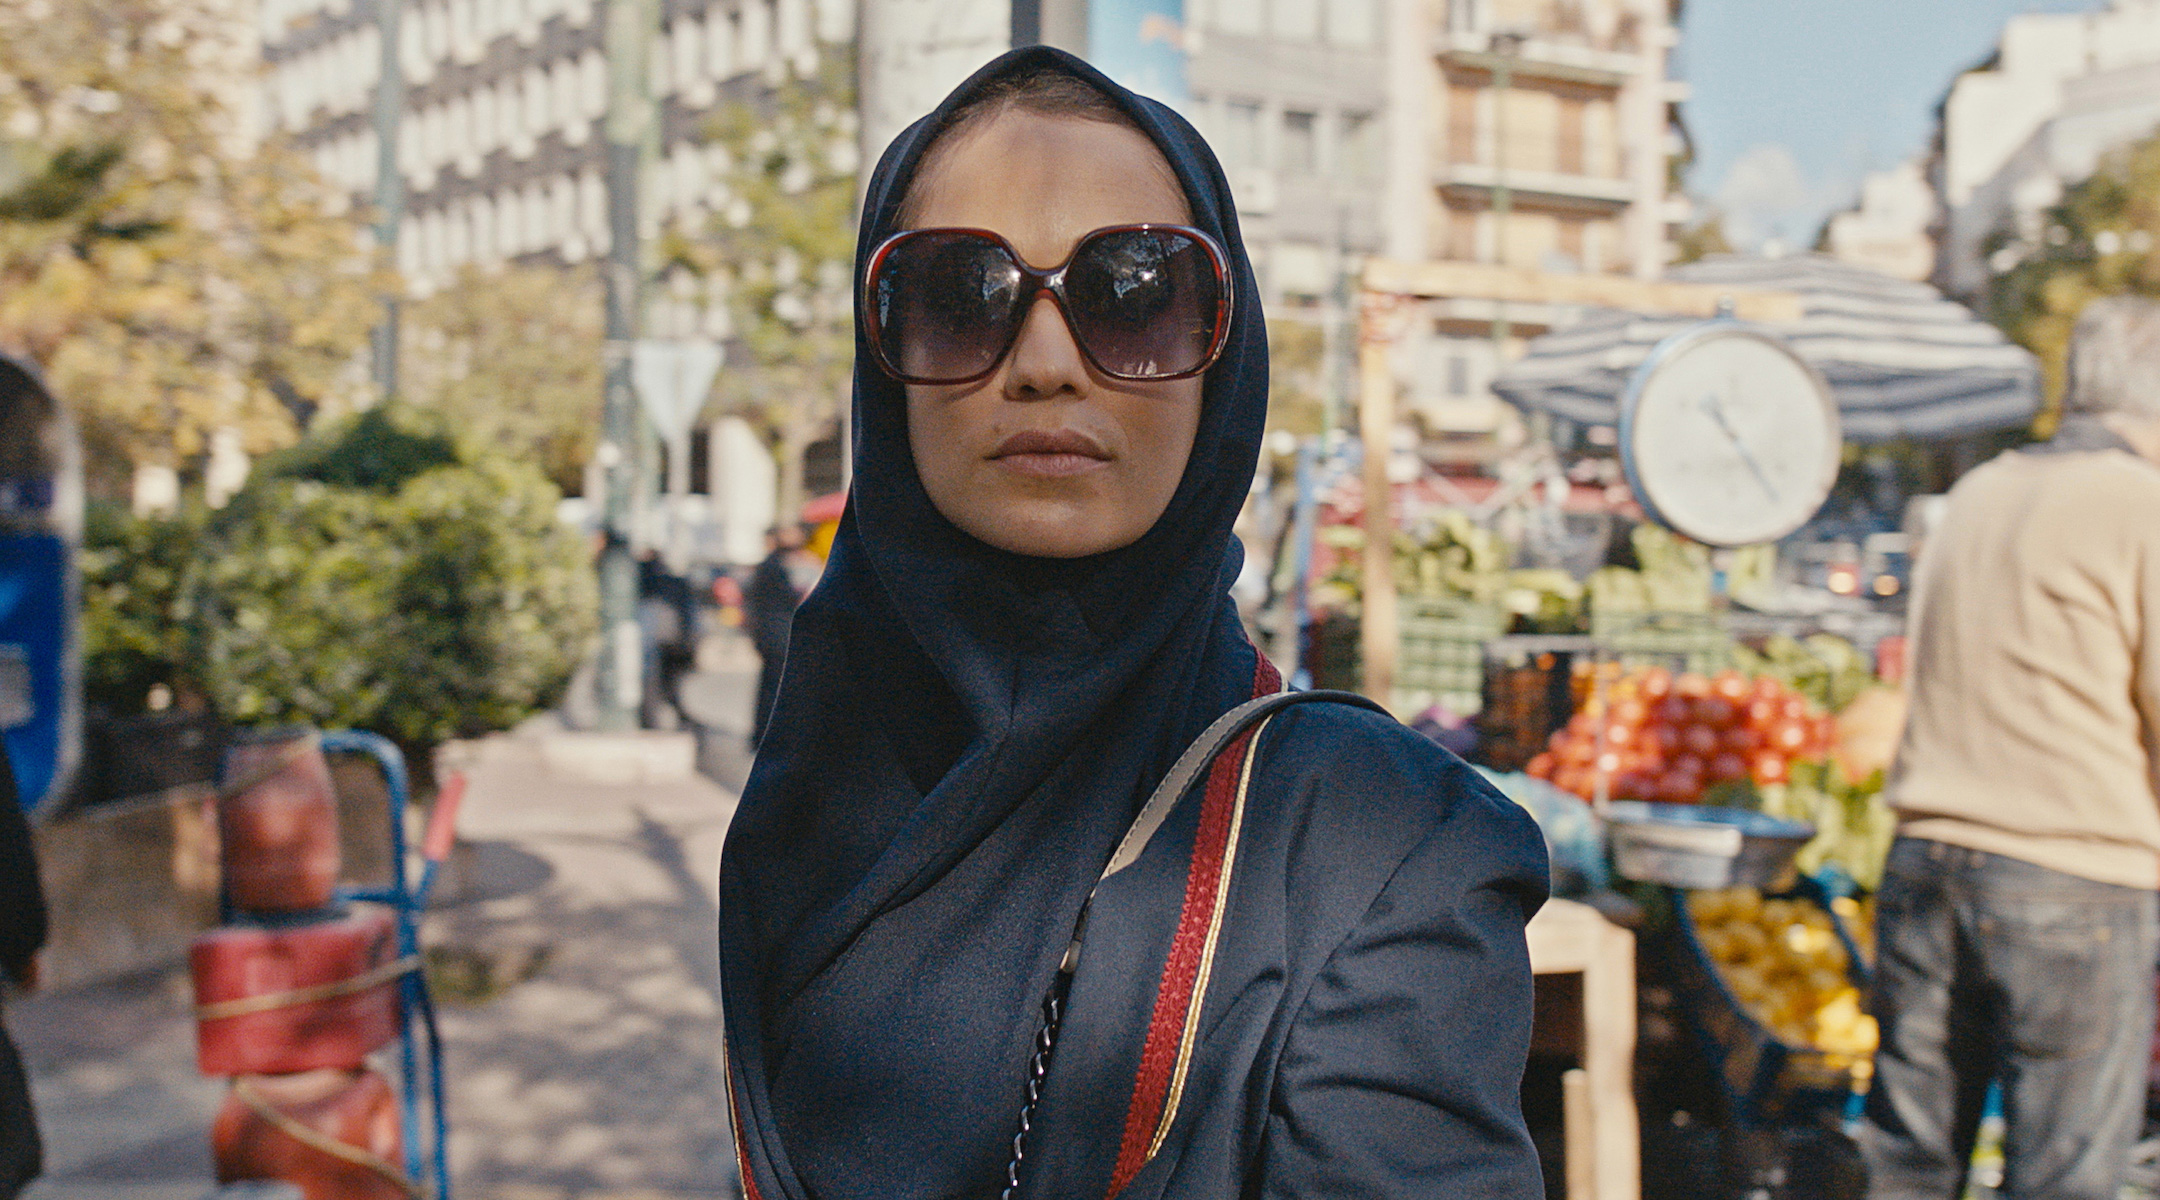 'Tehran' is a groundbreaking Israeli spy show about immigrant identity